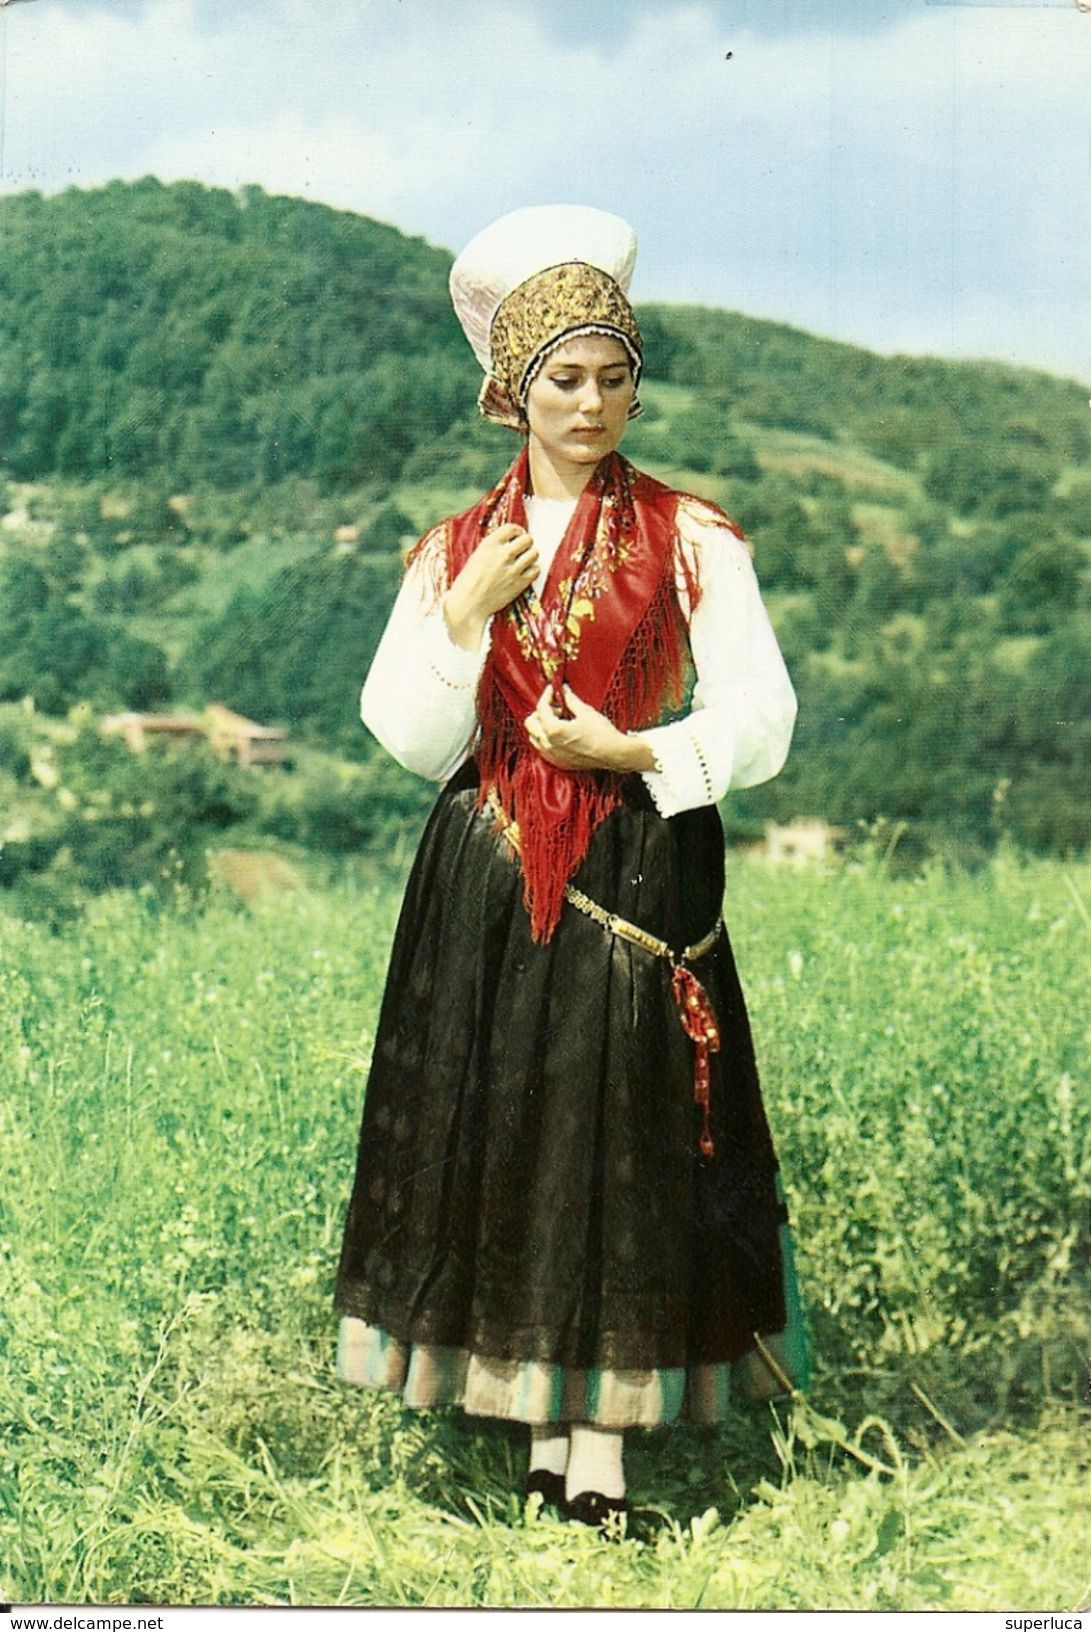 1NATIONAL COSTUME FROM THE BOHINI DISTRICTSLOVENIA